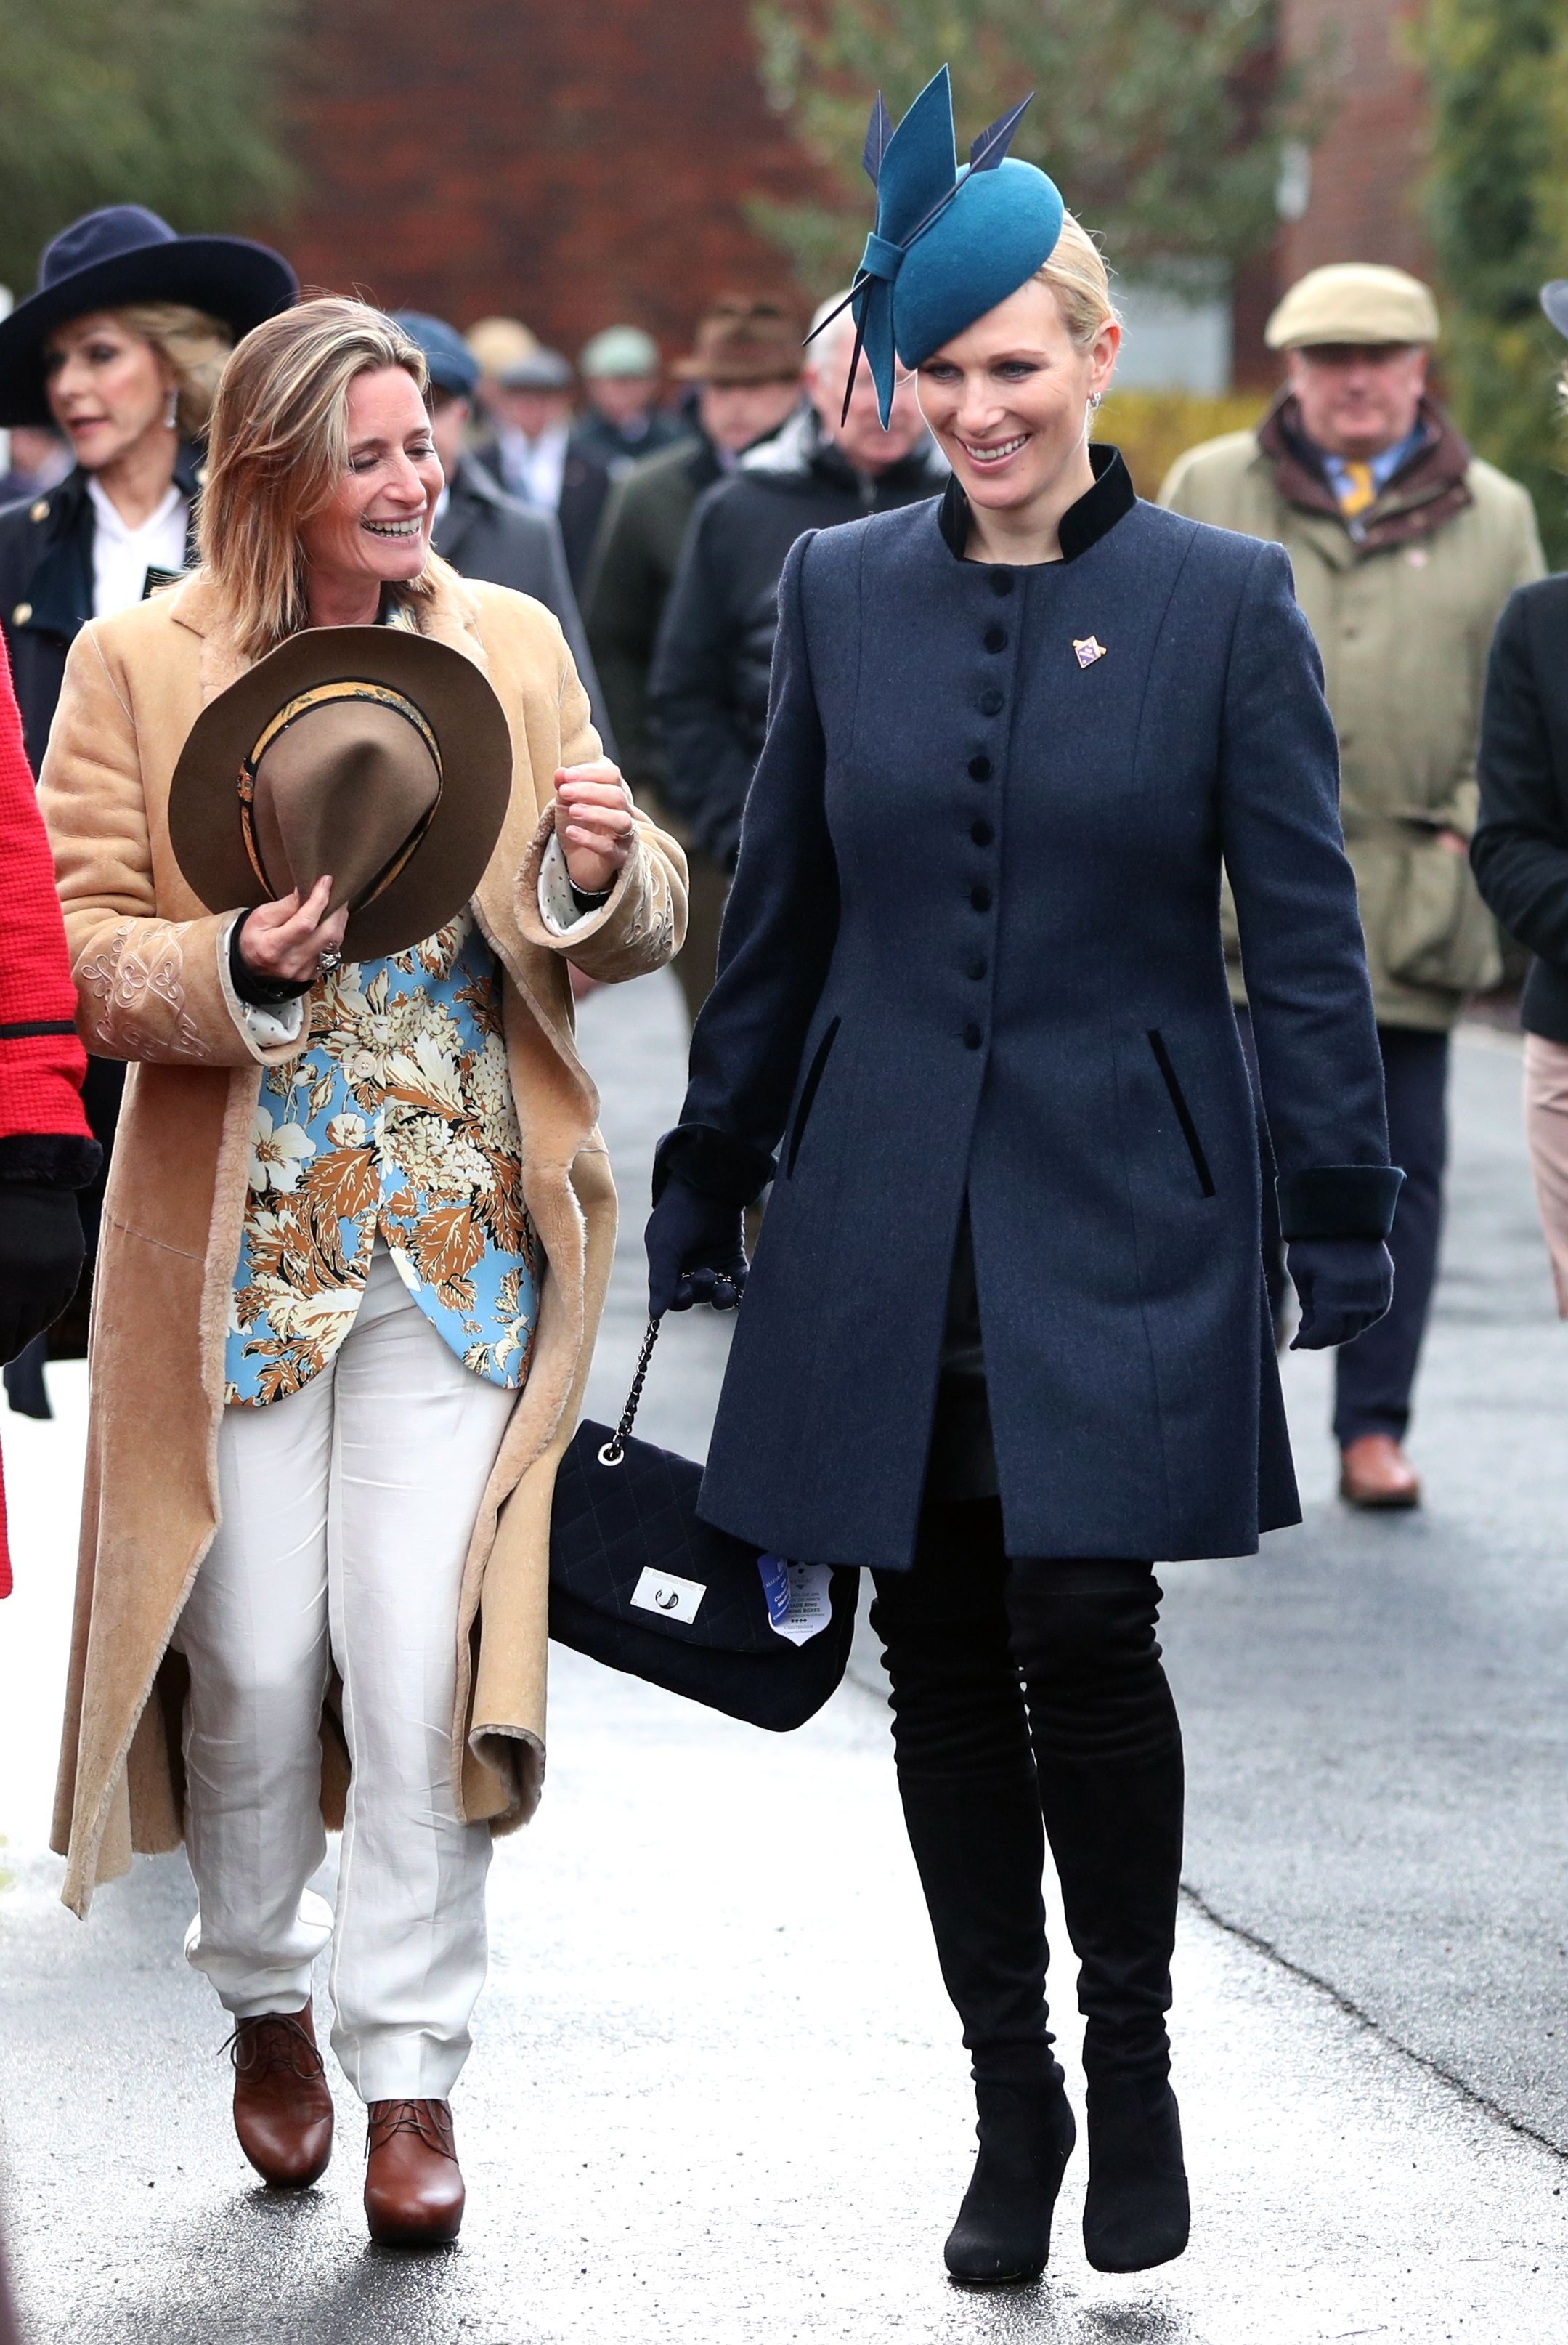 Zara Tindall bundled up in a navy high-collared tweed coat for a day at Cheltenham Festival's races. The young royal topped her outfit off with a cerulean cocktail hat, Stuart Weitzman boots and a quilted black handbag.